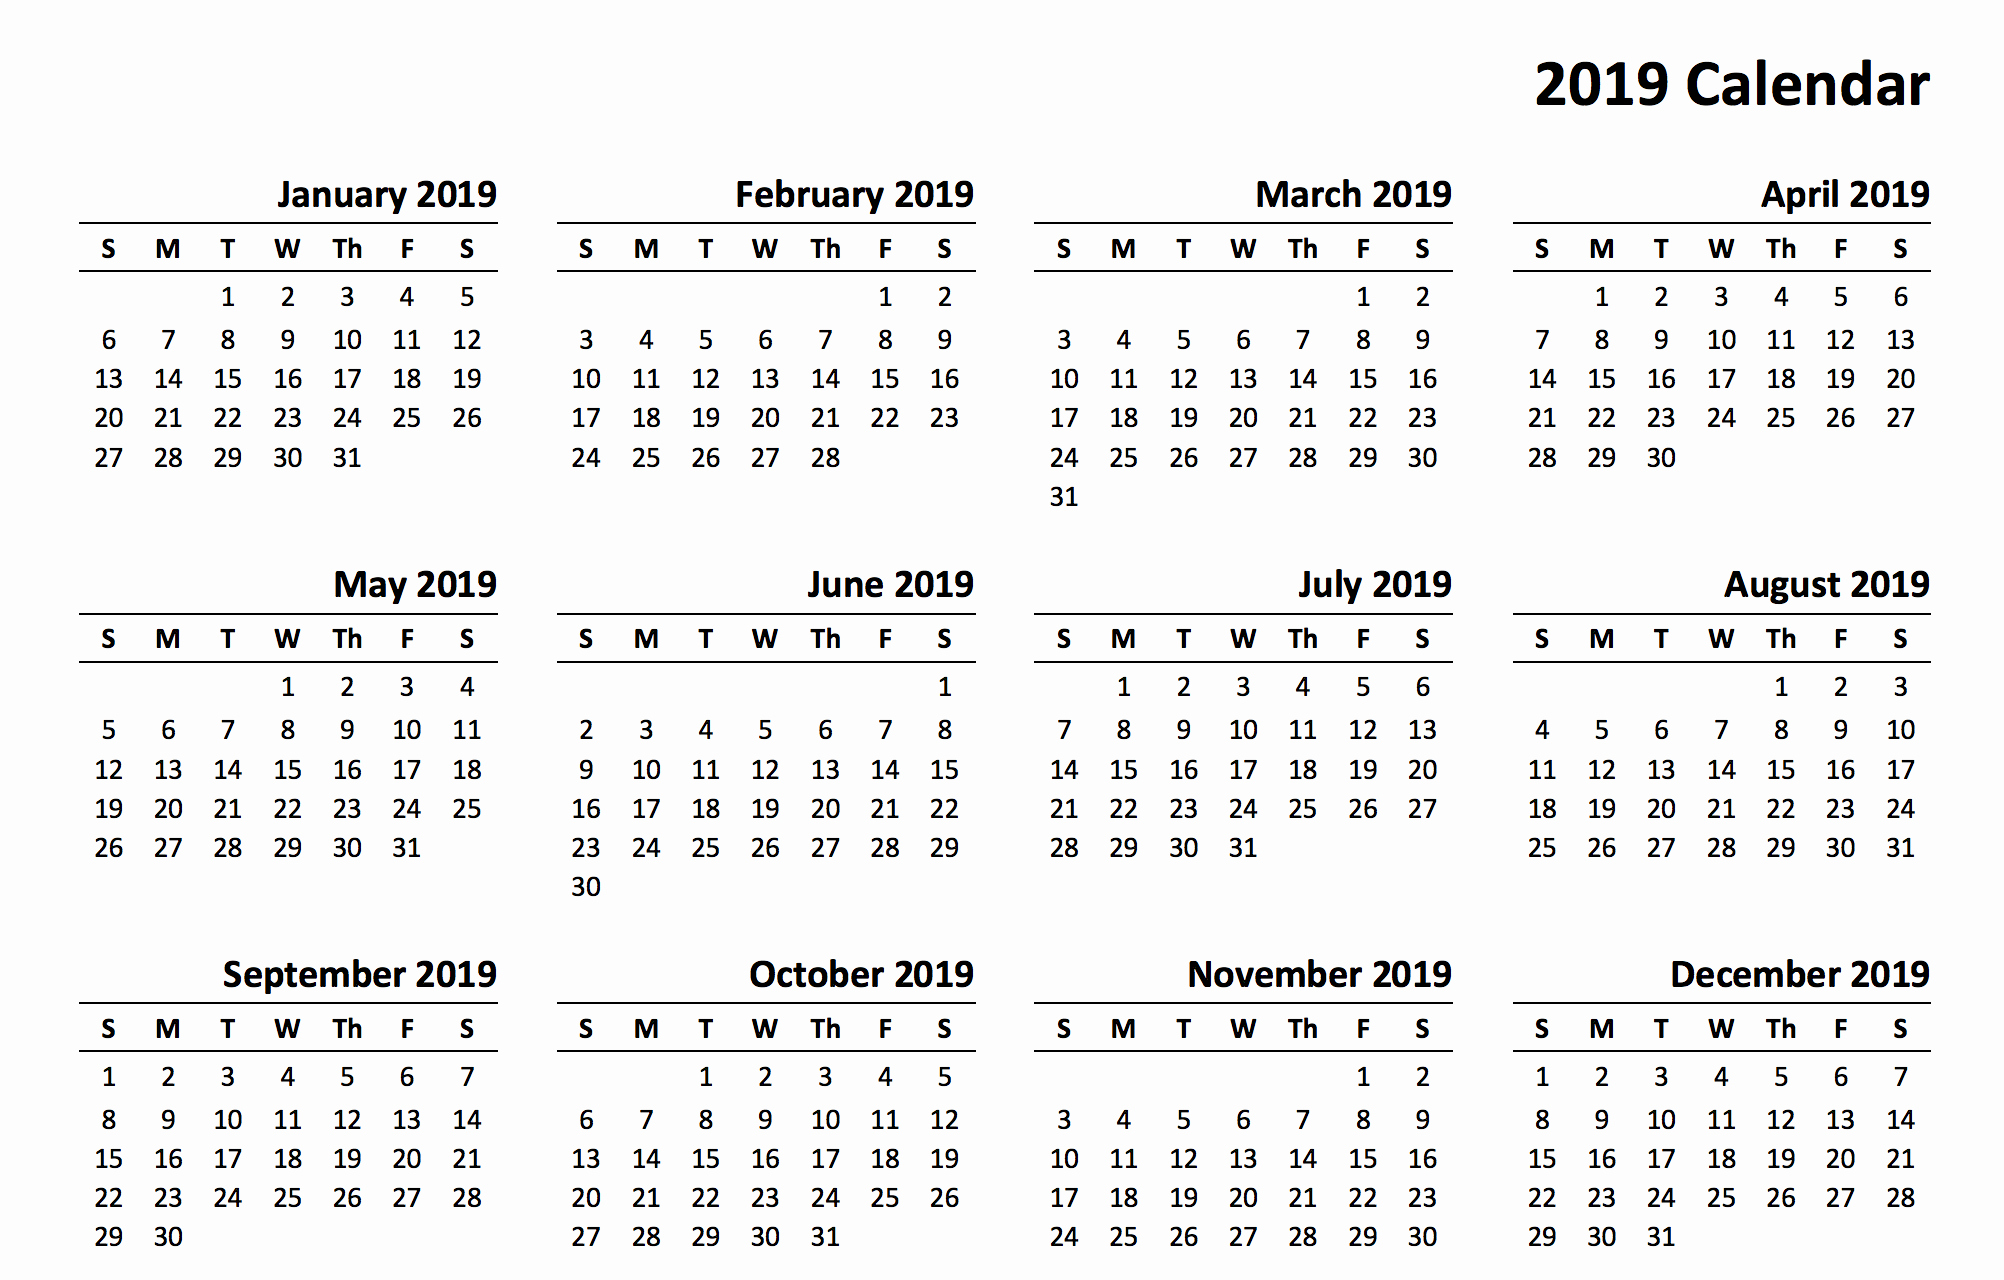 Free 2019 Calendar Template New 2019 Printable Calendar Templates Pdf Excel Word Free